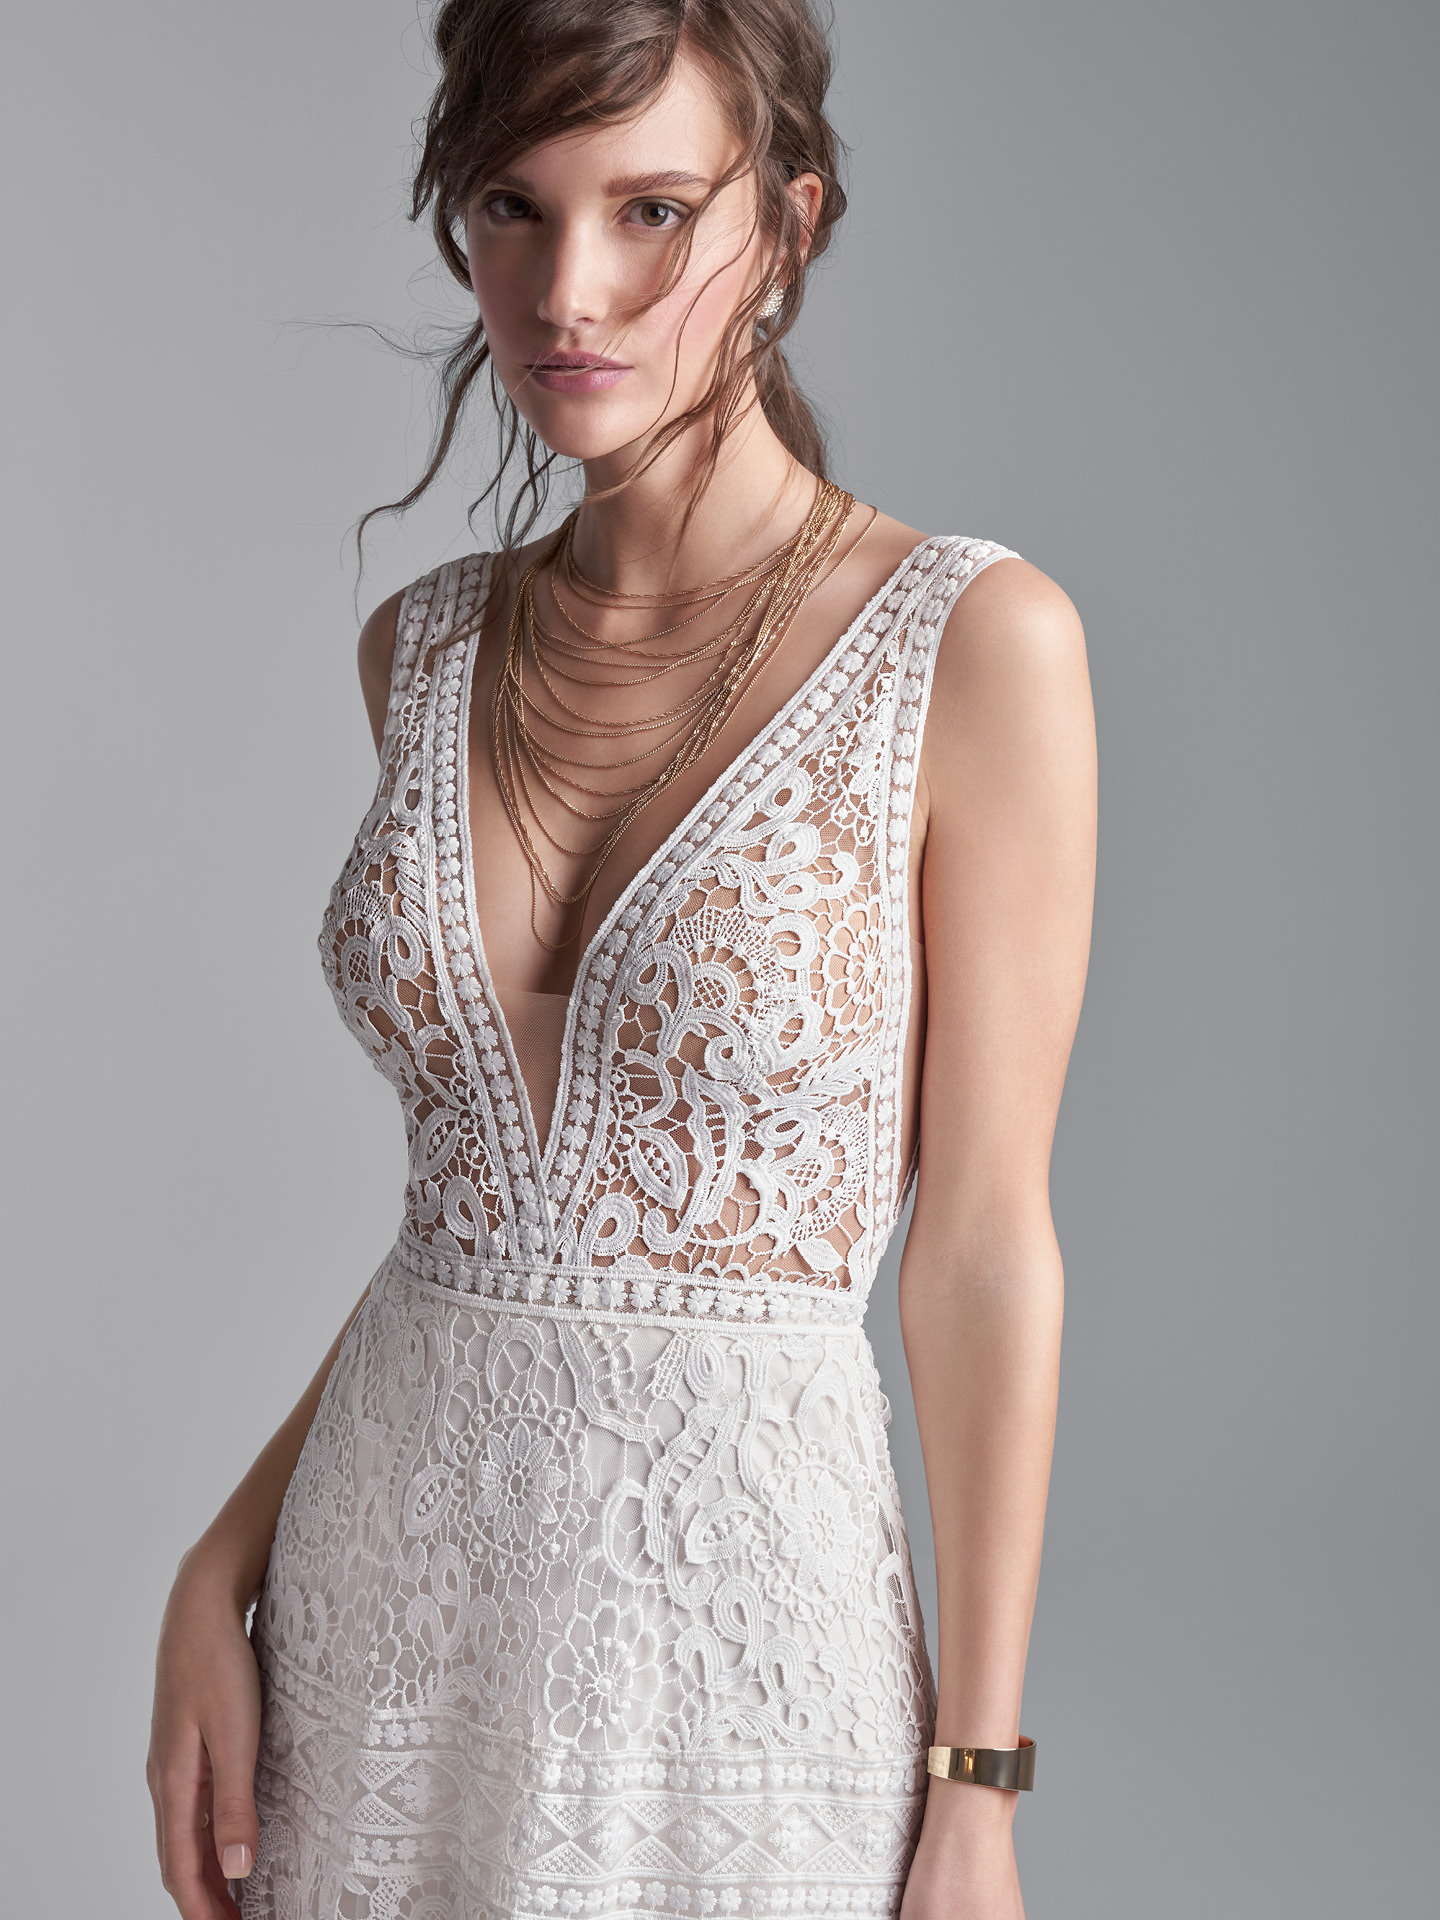 Model Wearing Boho Lace A-line Wedding Gown Called Finley Dawn by Sottero and Midgley